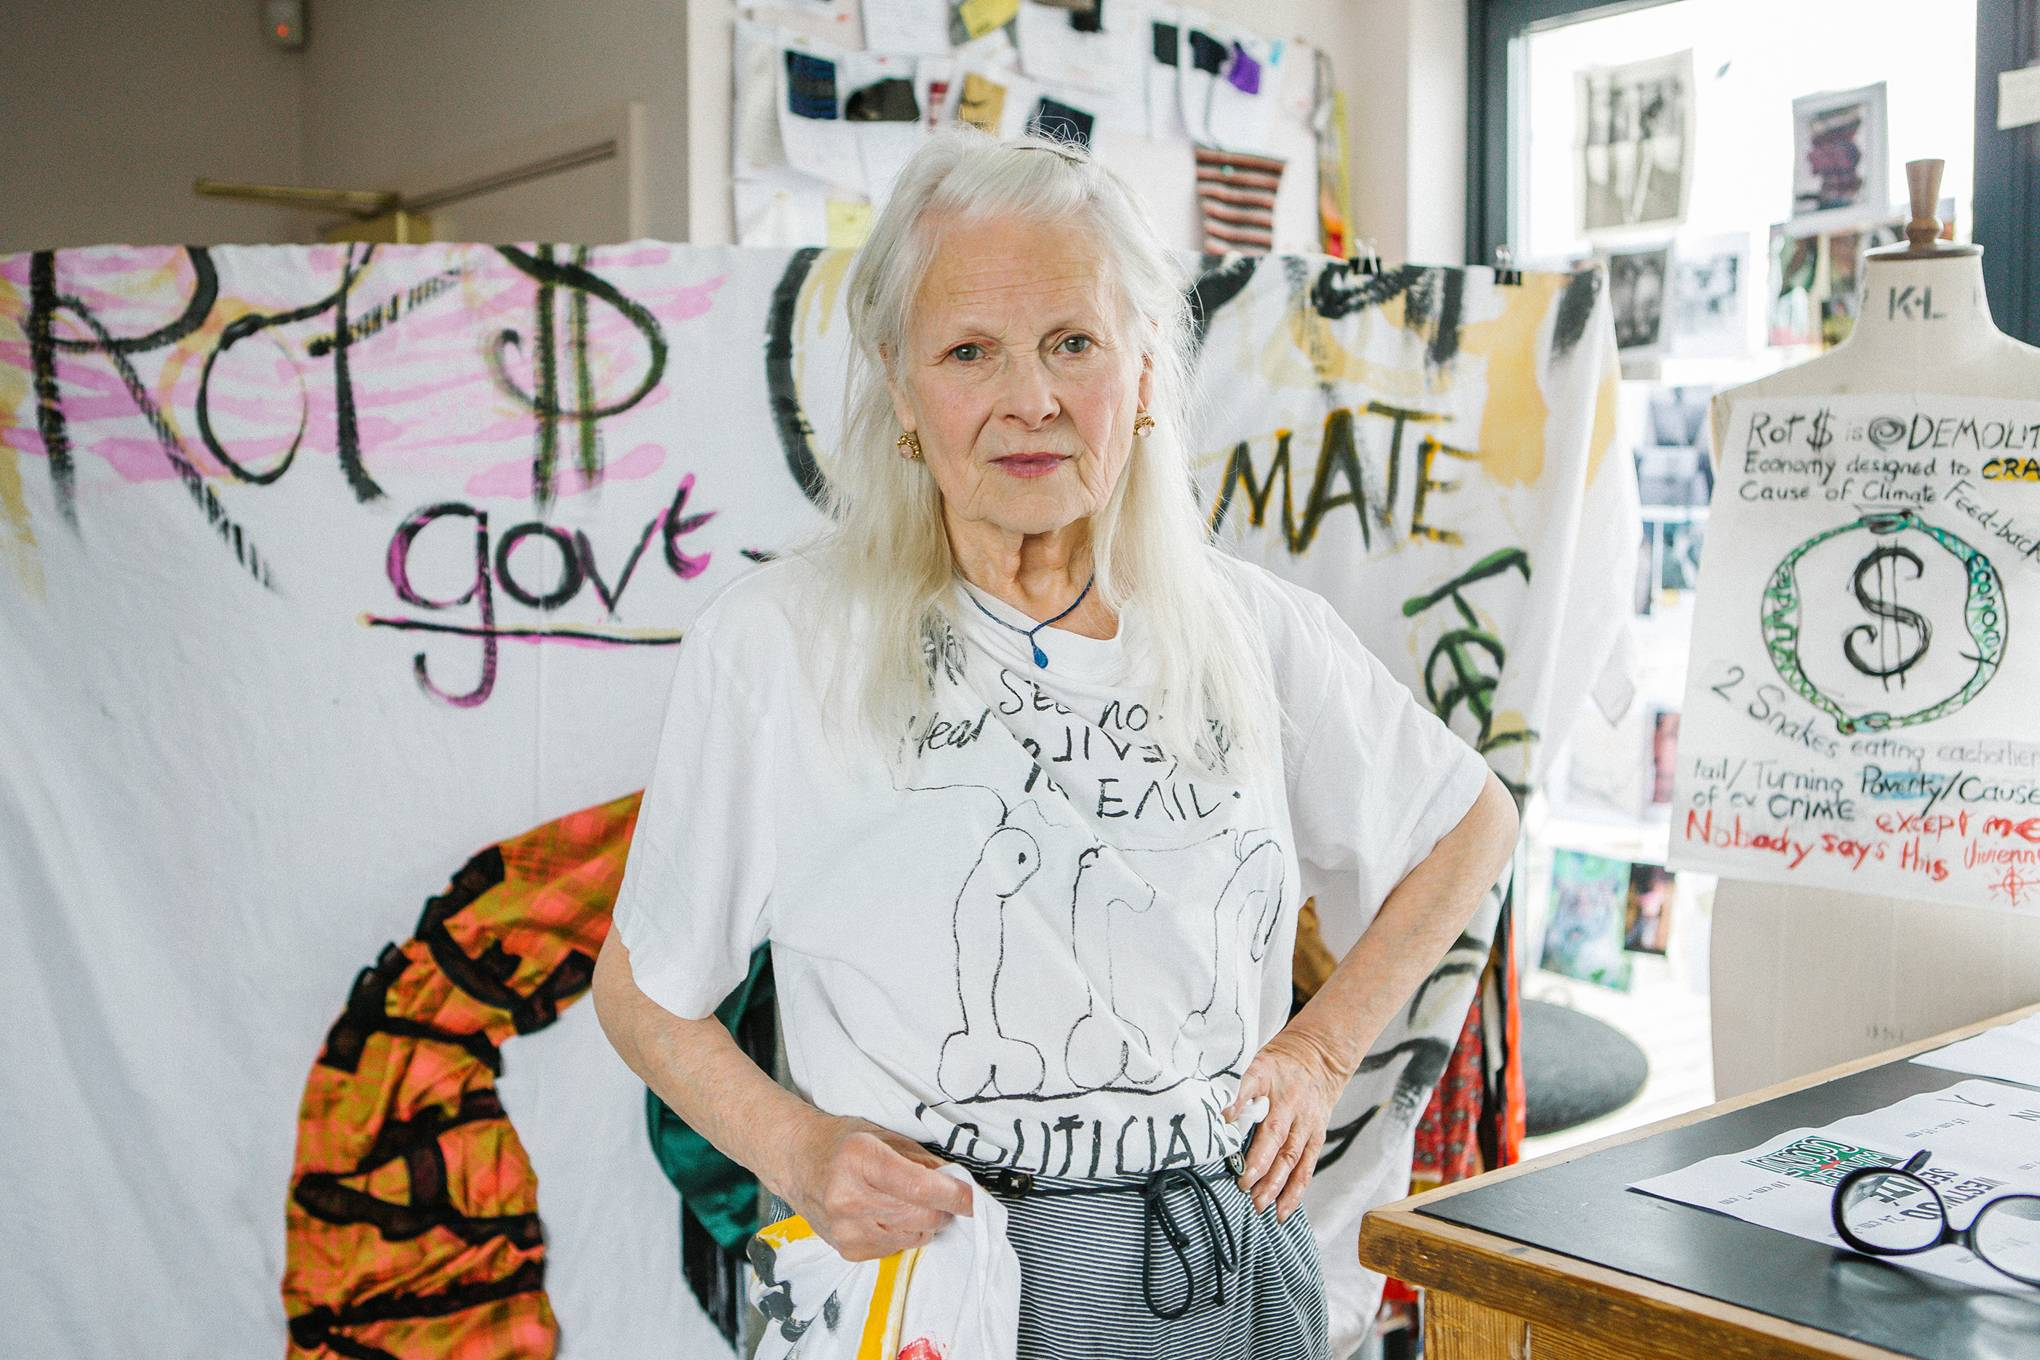 Vivienne Westwood's plan to save the world through the sale of her art